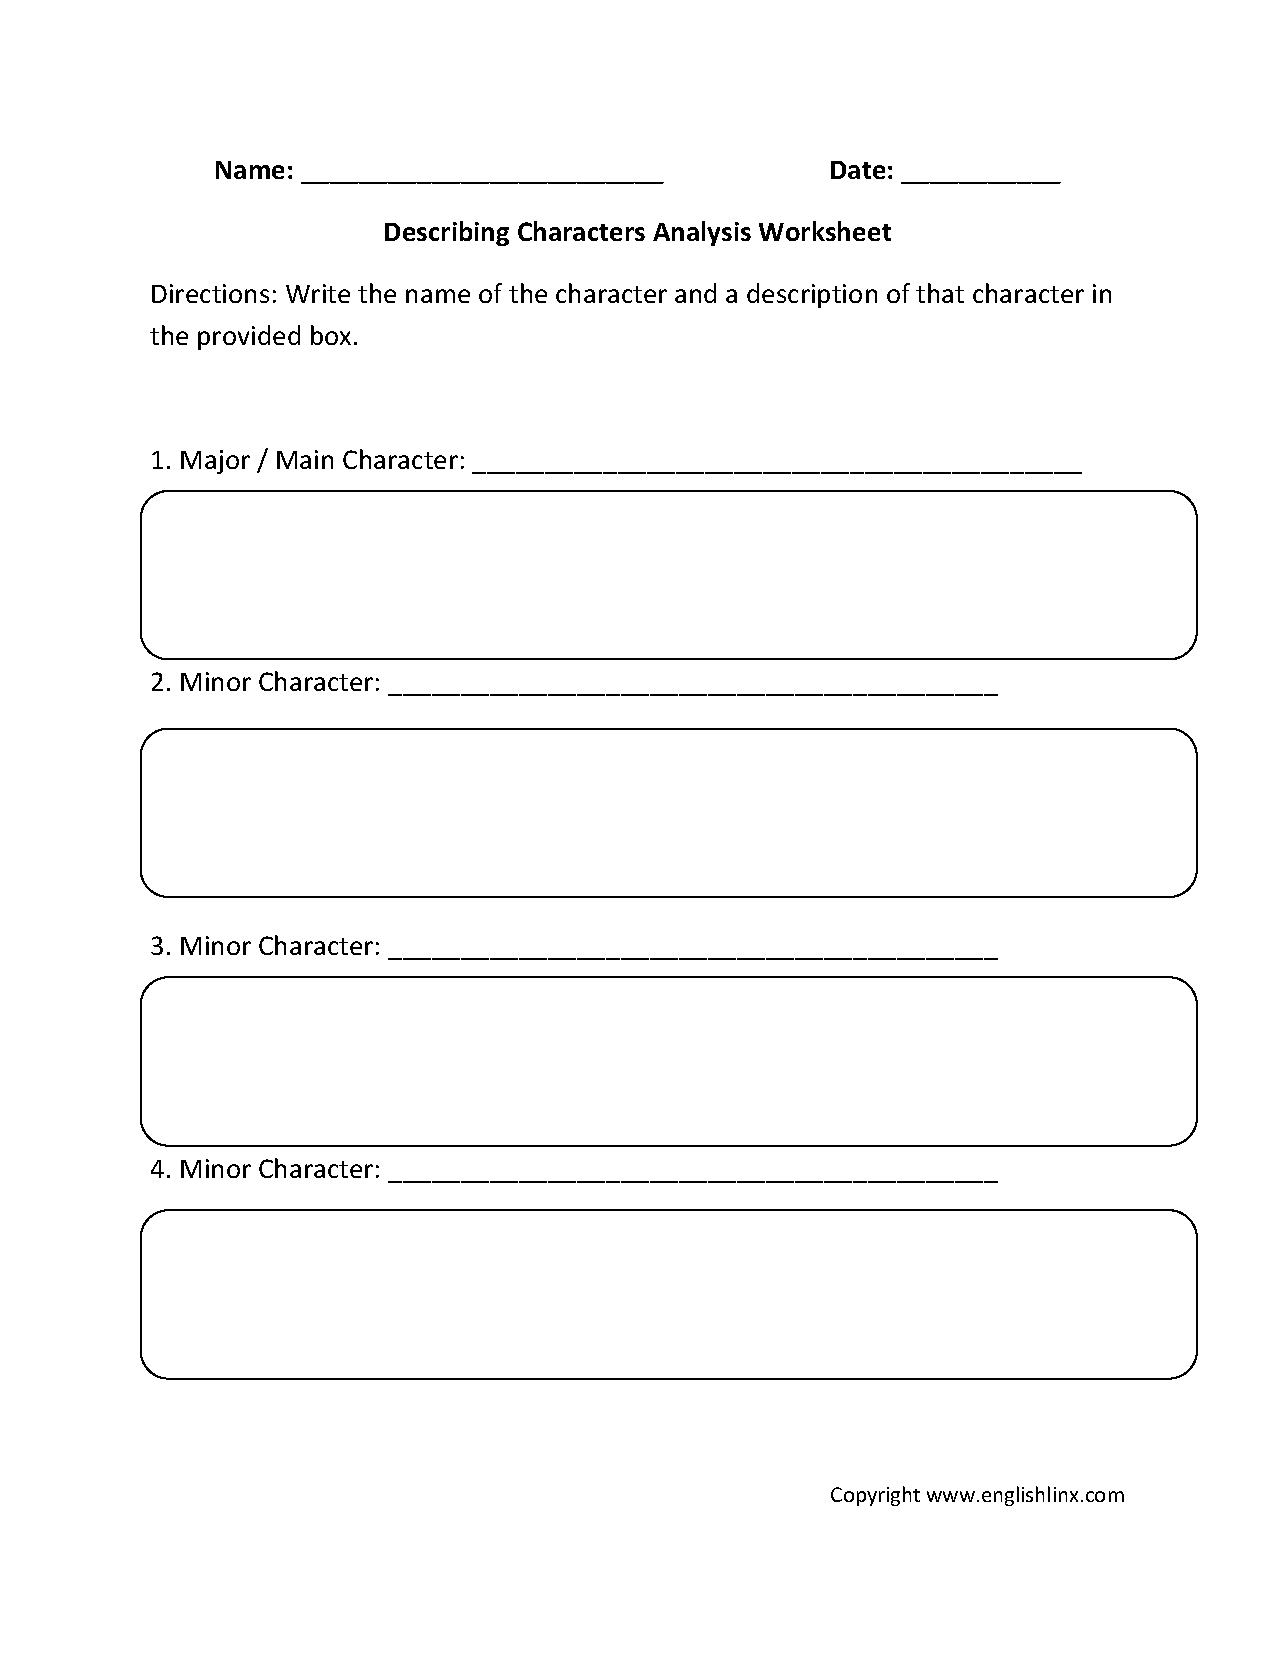 Worksheet Character Analysis Worksheet englishlinx com character analysis worksheets worksheets